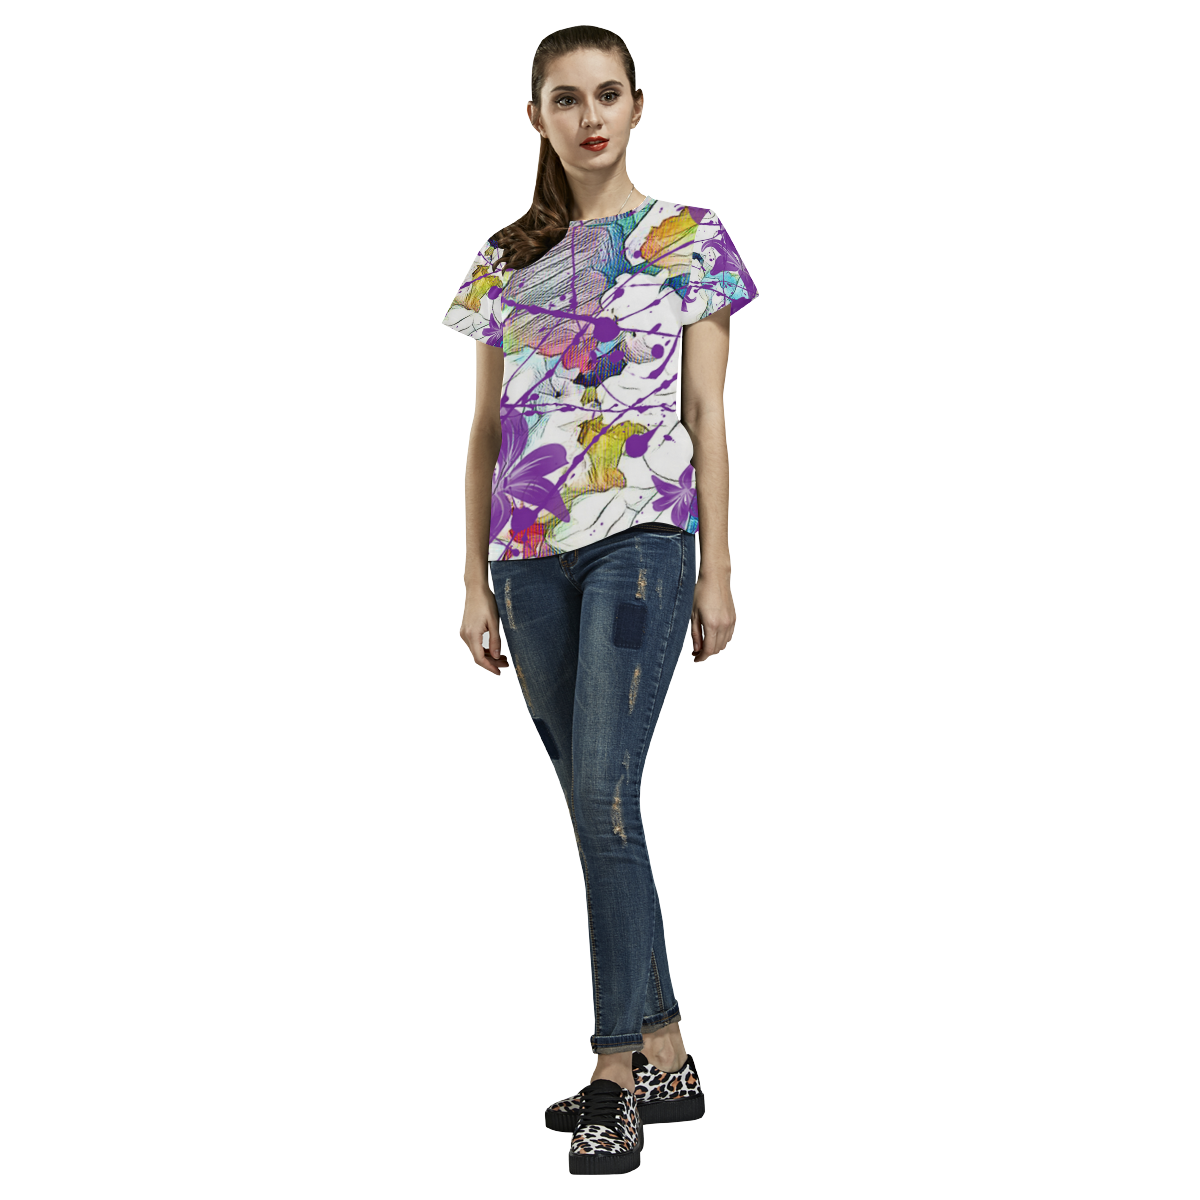 Lilac Lillis Abtract Splash All Over Print T-Shirt for Women (USA Size) (Model T40)